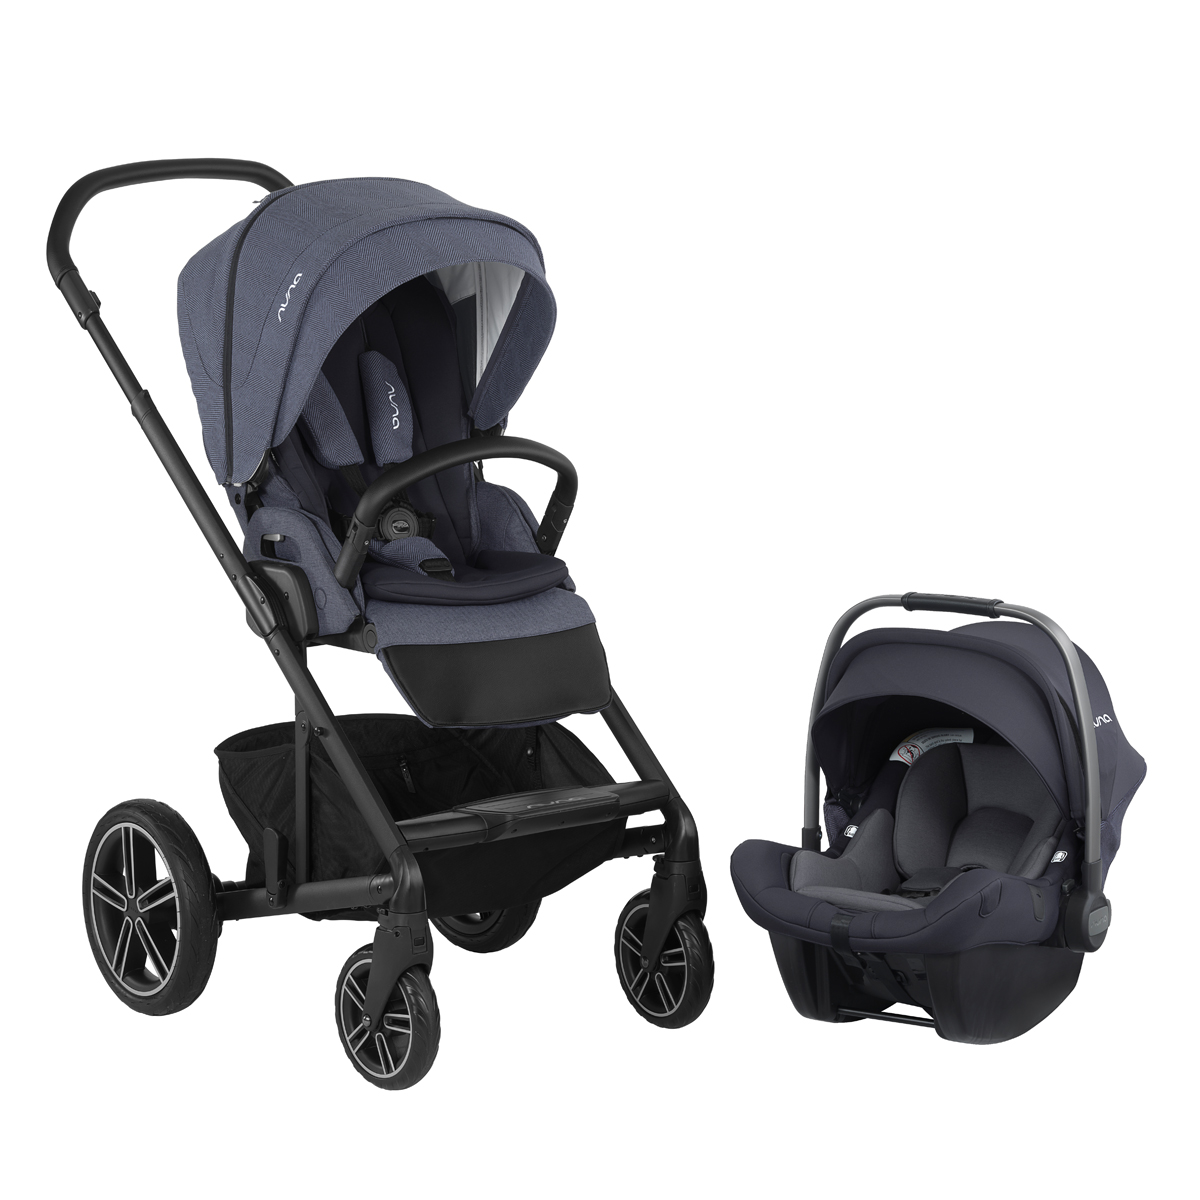 Nuna Mixx Stroller & Car Seat Travel System in Bleu